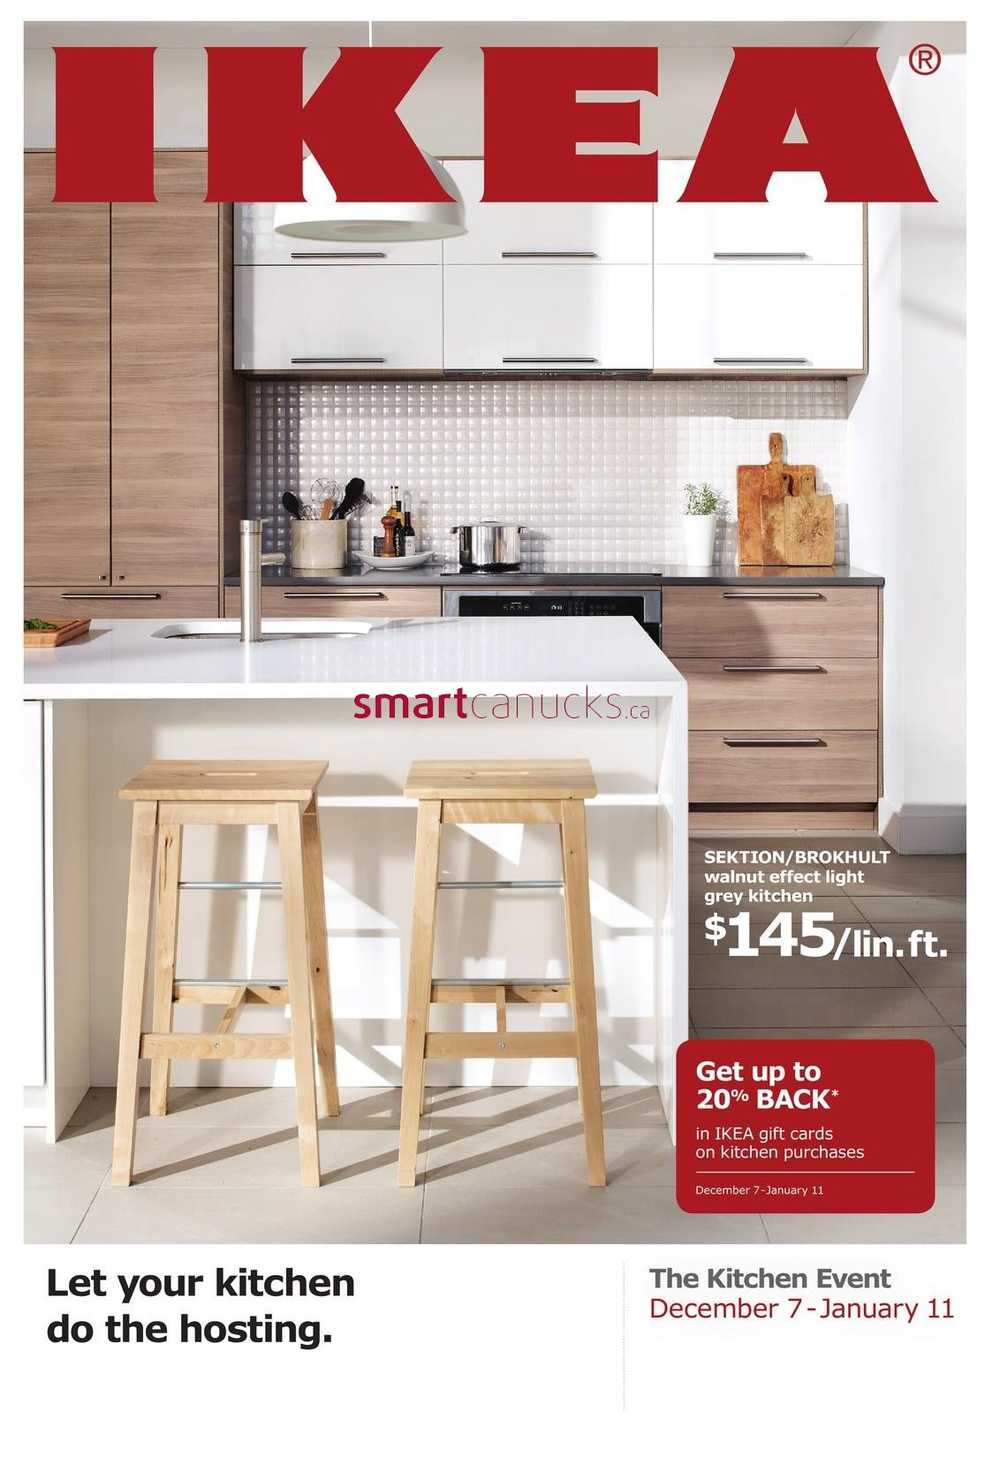 Ikea The Kitchen Event Flyer December 7 To January 11